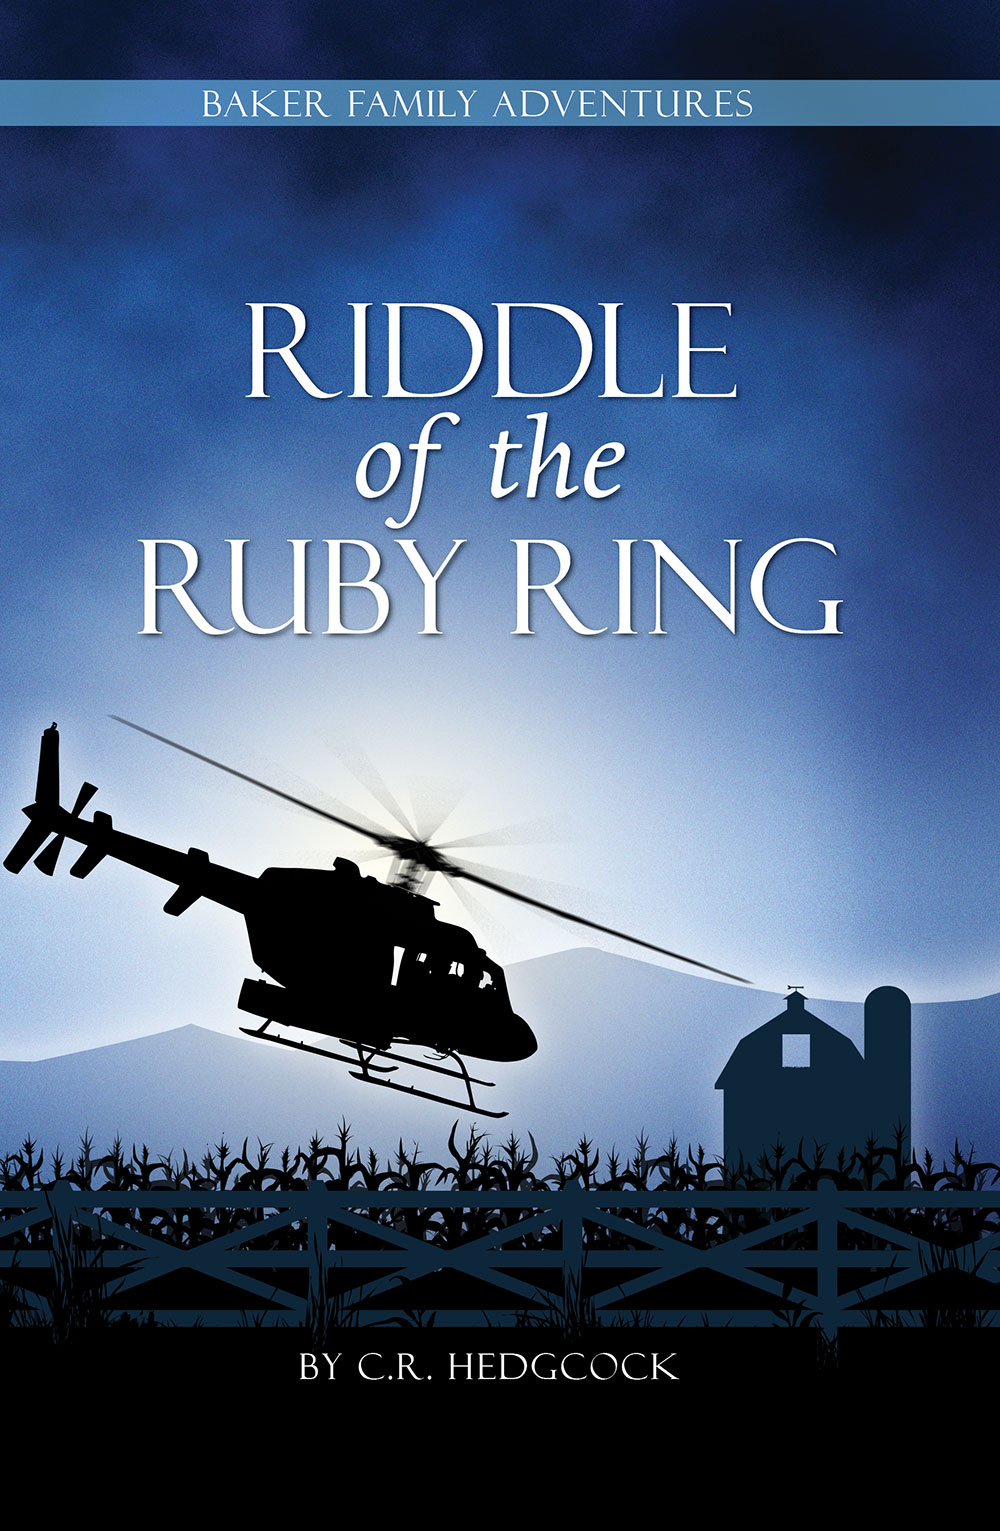 riddle-of-the-ruby-ring